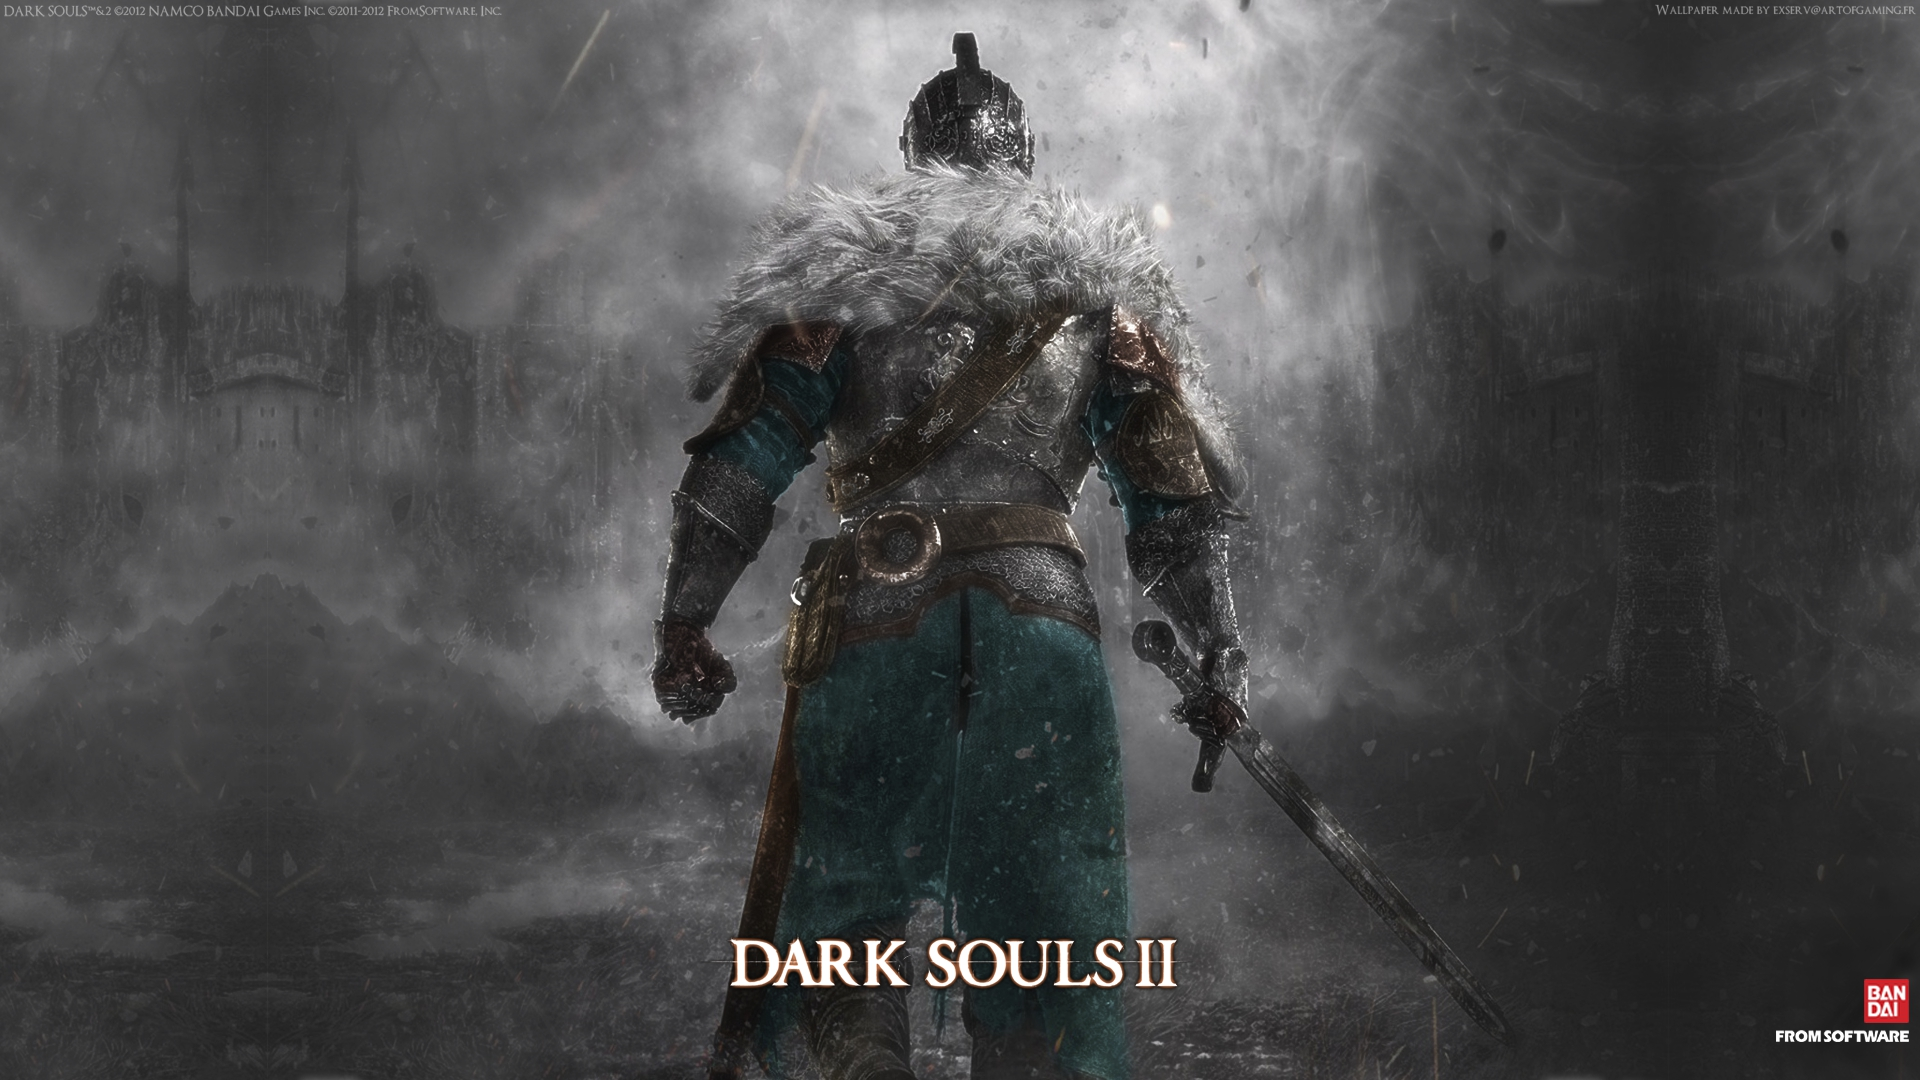 Dark Souls 2 Wallpaper 1920x1080 73850